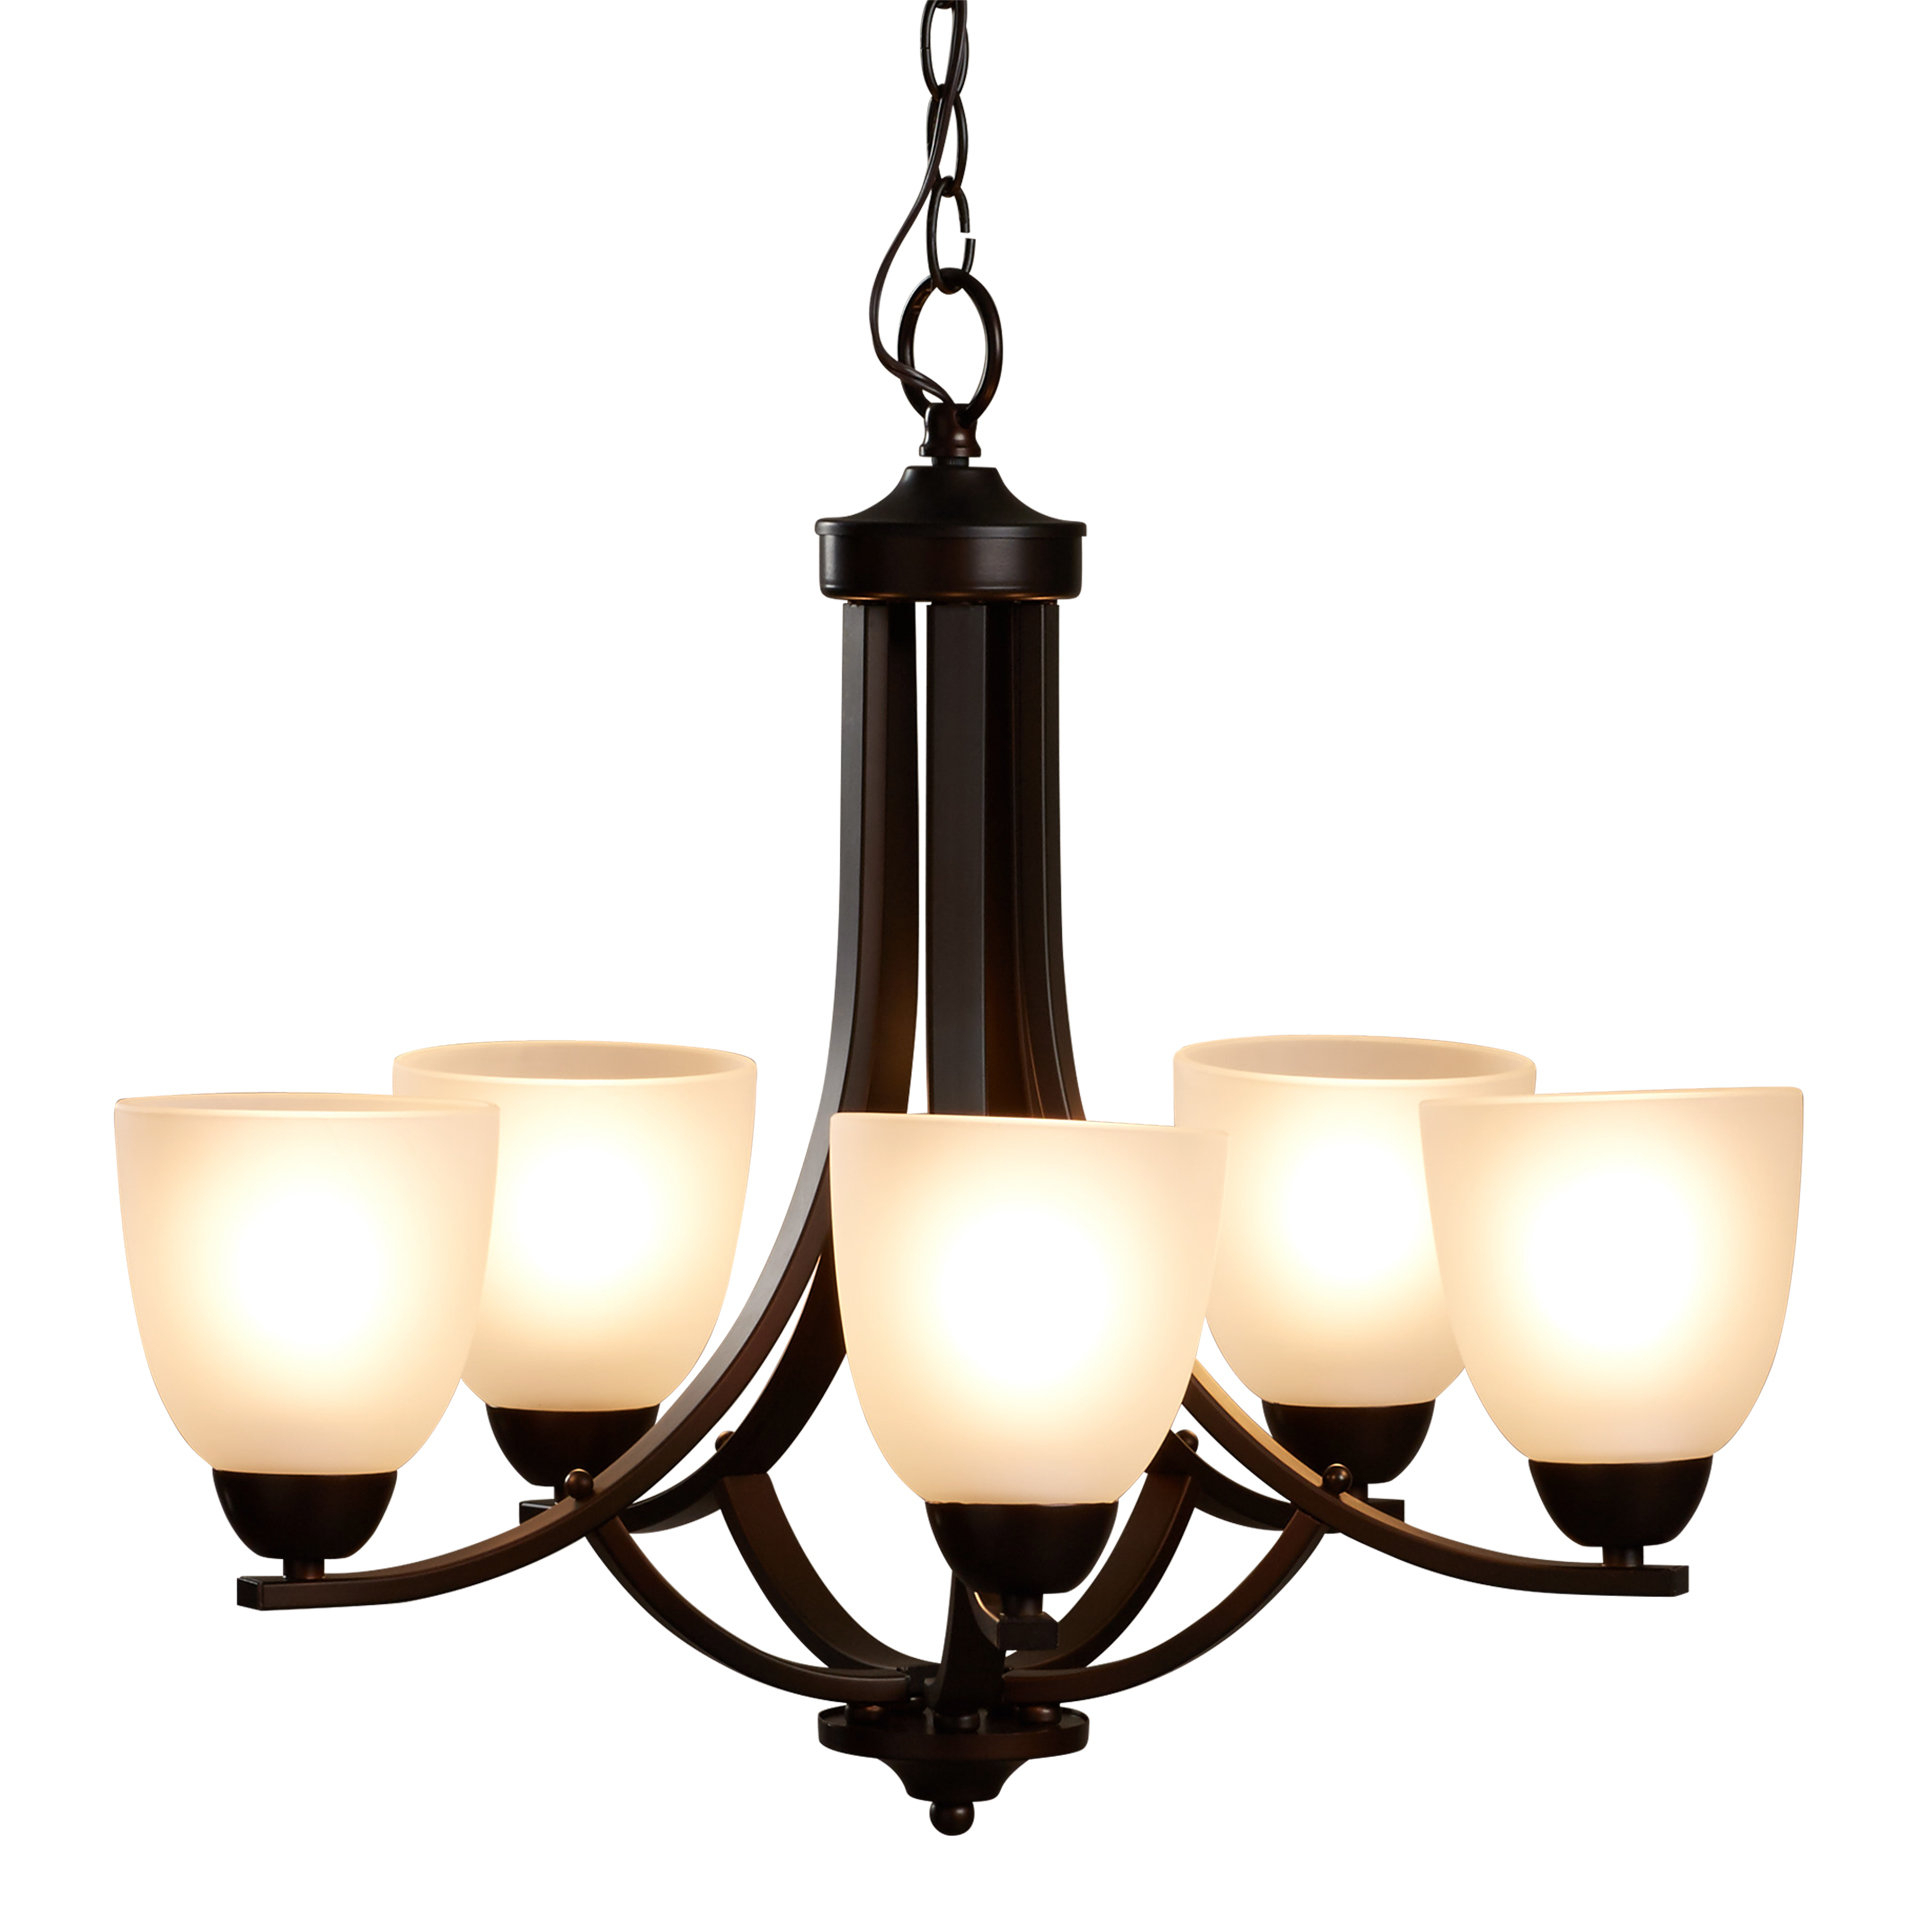 Crofoot 5 Light Shaded Chandeliers In Latest Hayden 5 Light Shaded Chandelier (View 5 of 25)